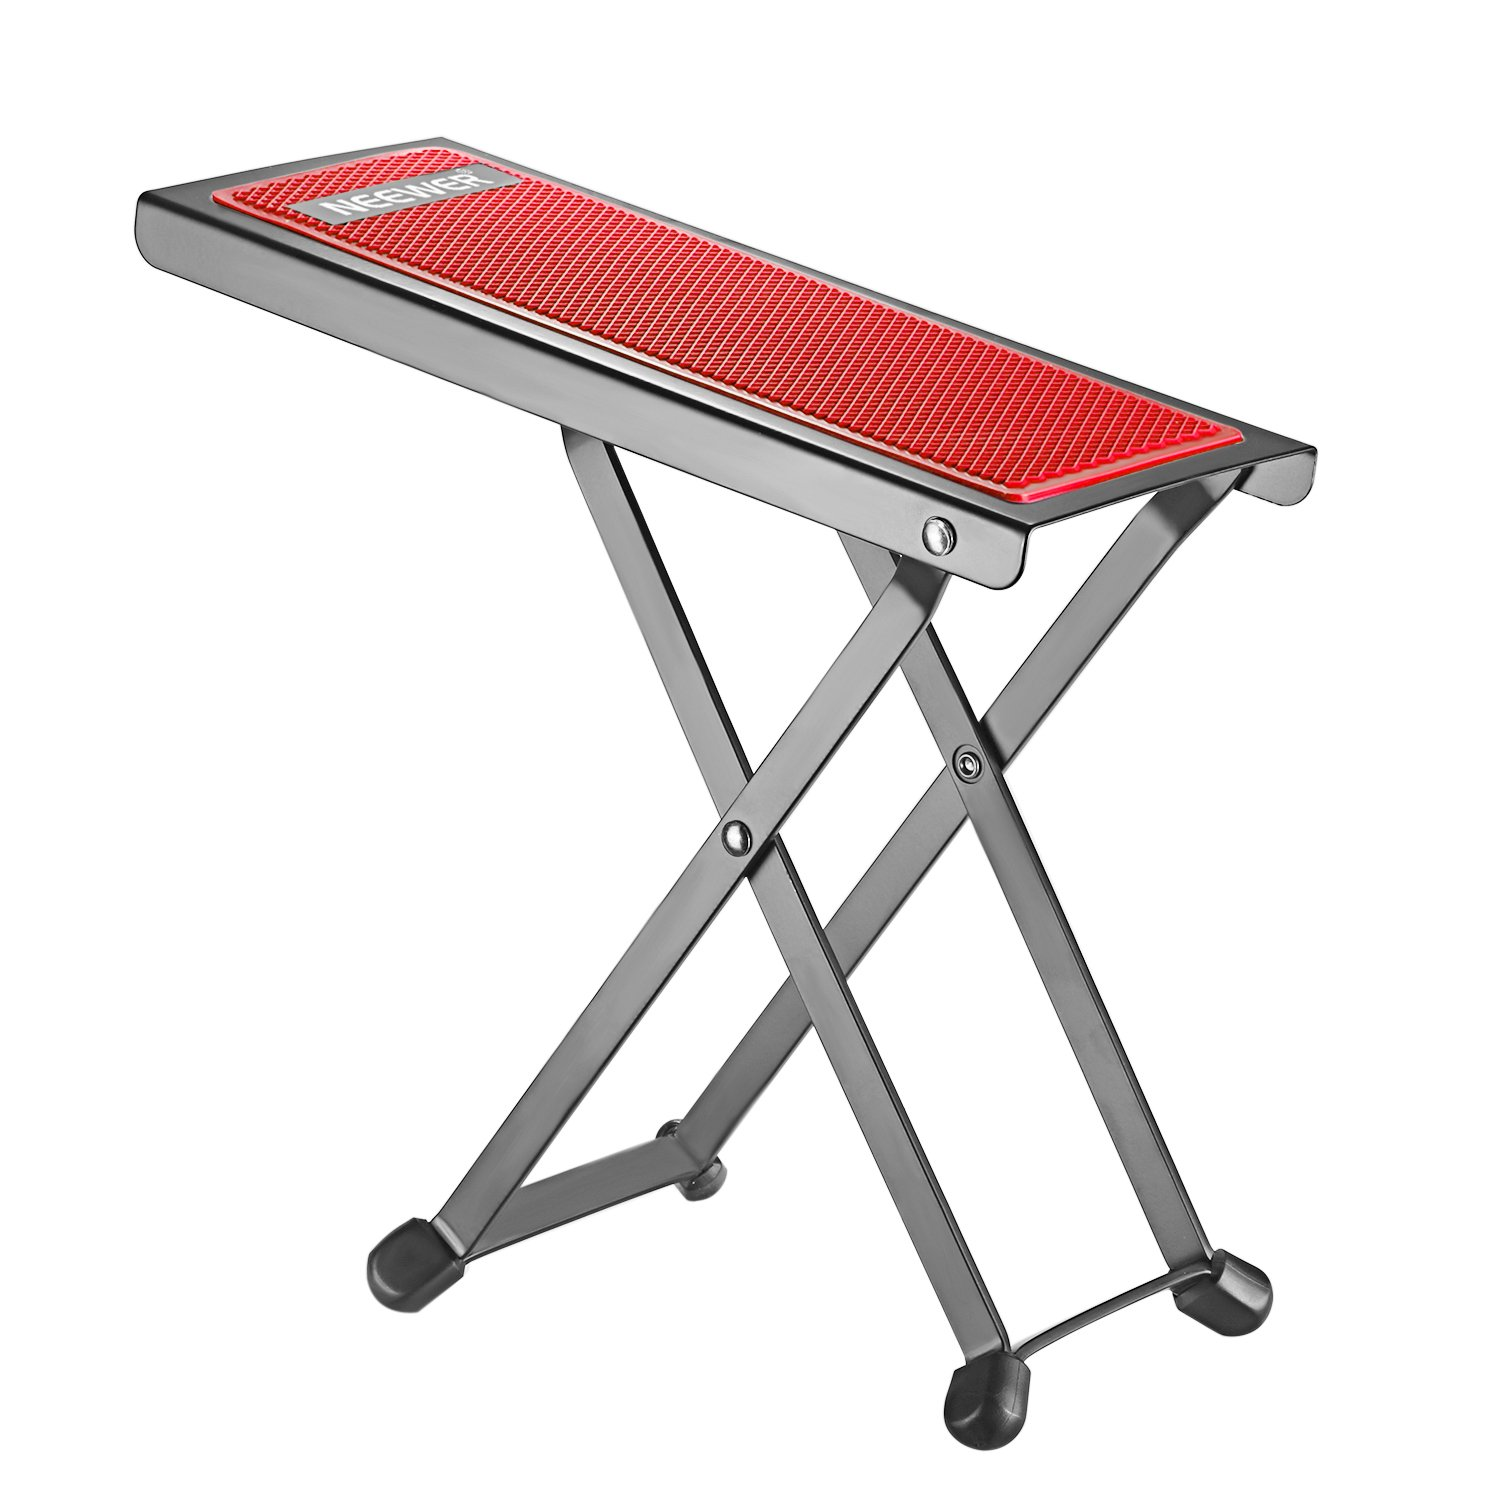 Neewer NW001 Adjustable Guitar Foot Stool, Sturdy Solid Iron Pedal Rest with 4 Fixed Height Positions Non-slip Rubber End Caps and Pad for Classical Flamenco Acoustic or Electric Guitar Players(Blue) 40089307